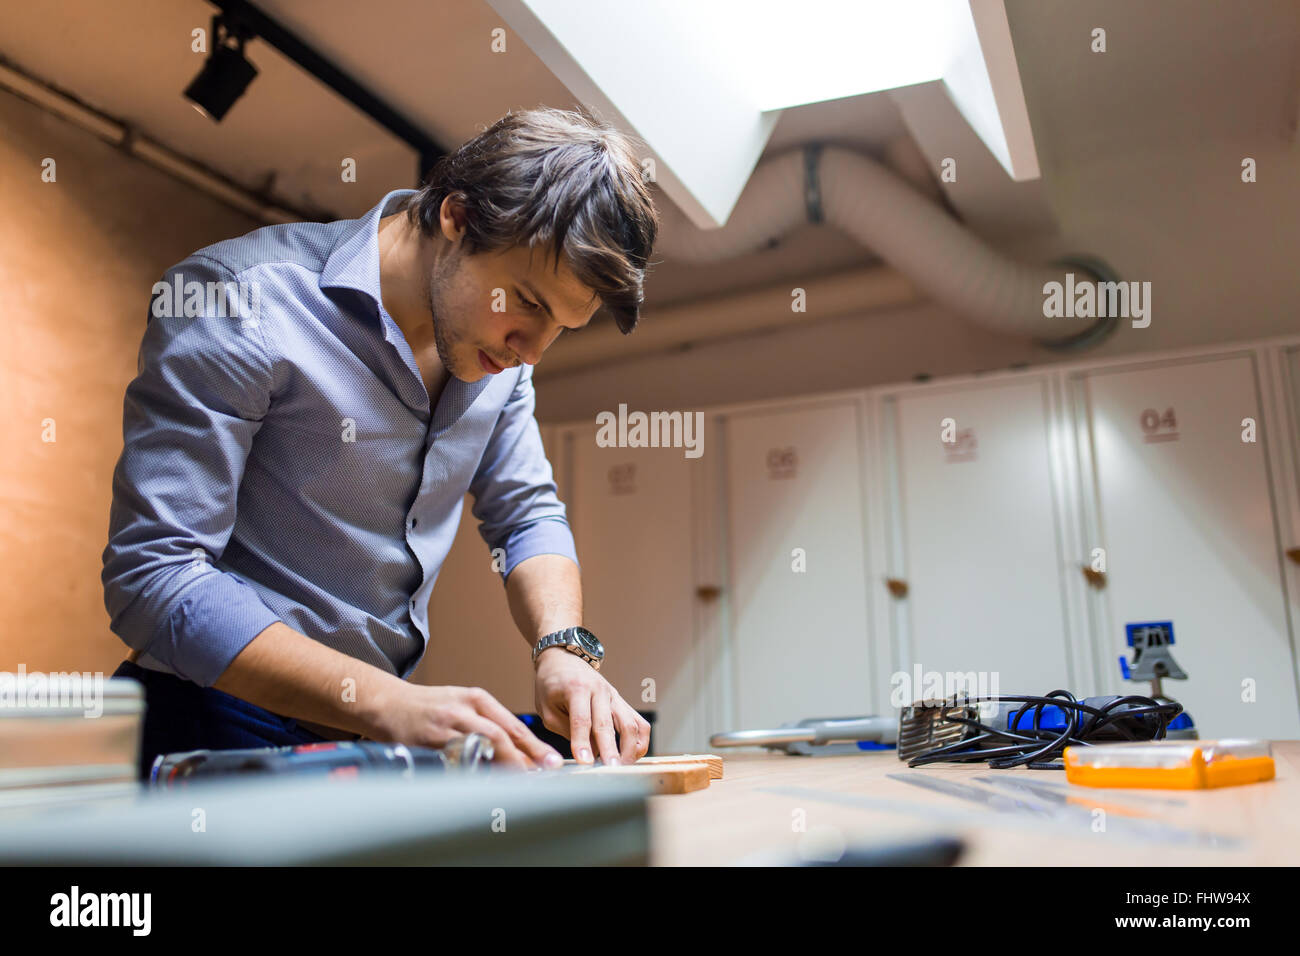 Joiner working and designing on workbench in workshop - Stock Image